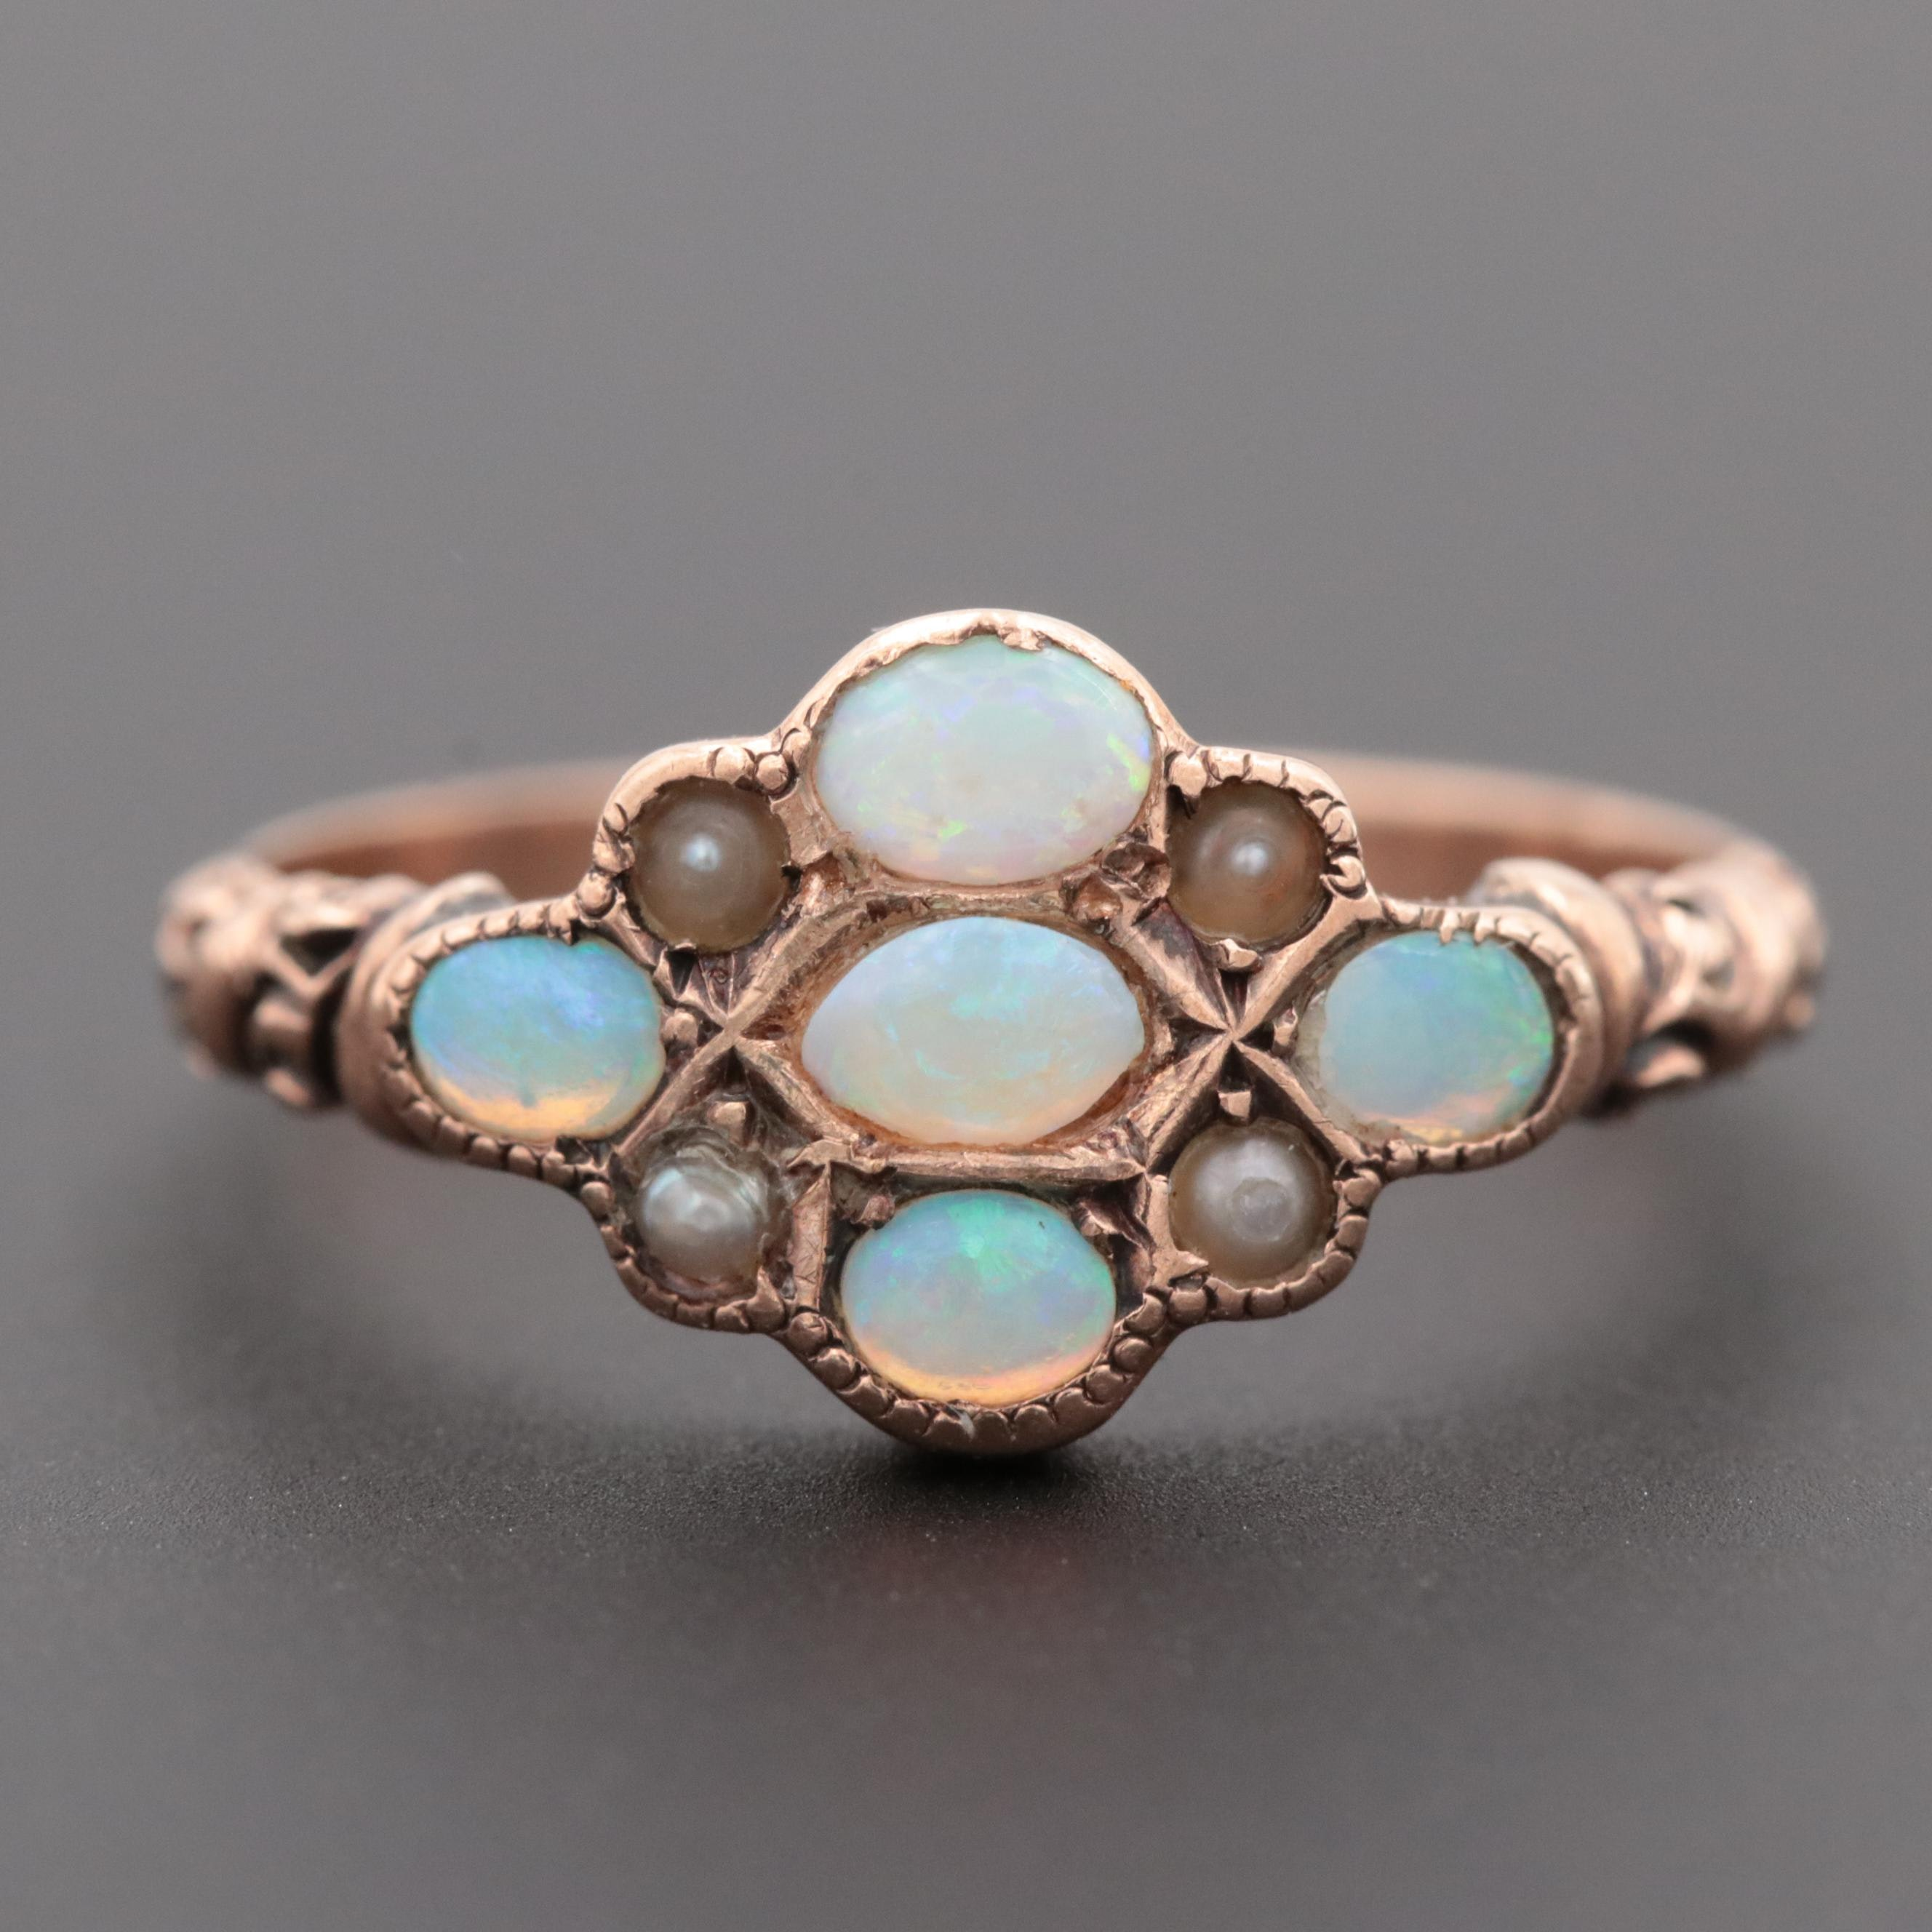 Victorian 10K Rose Gold Opal and Seed Pearl Ring